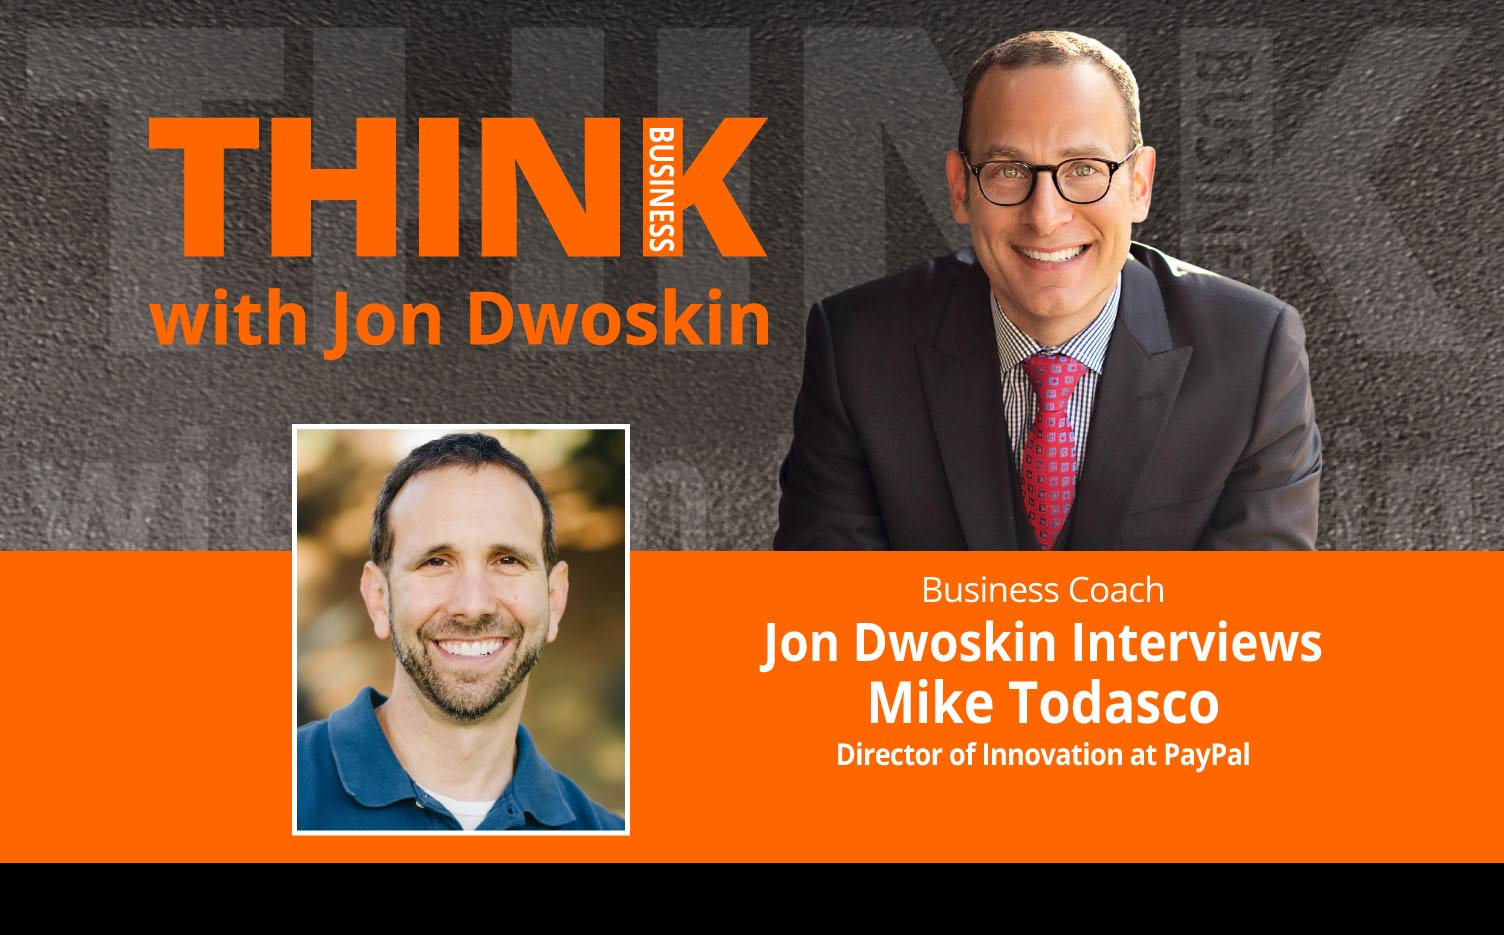 THINK Business Podcast: Jon Dwoskin Interviews  Mike Todasco, Director of Innovation at PayPal